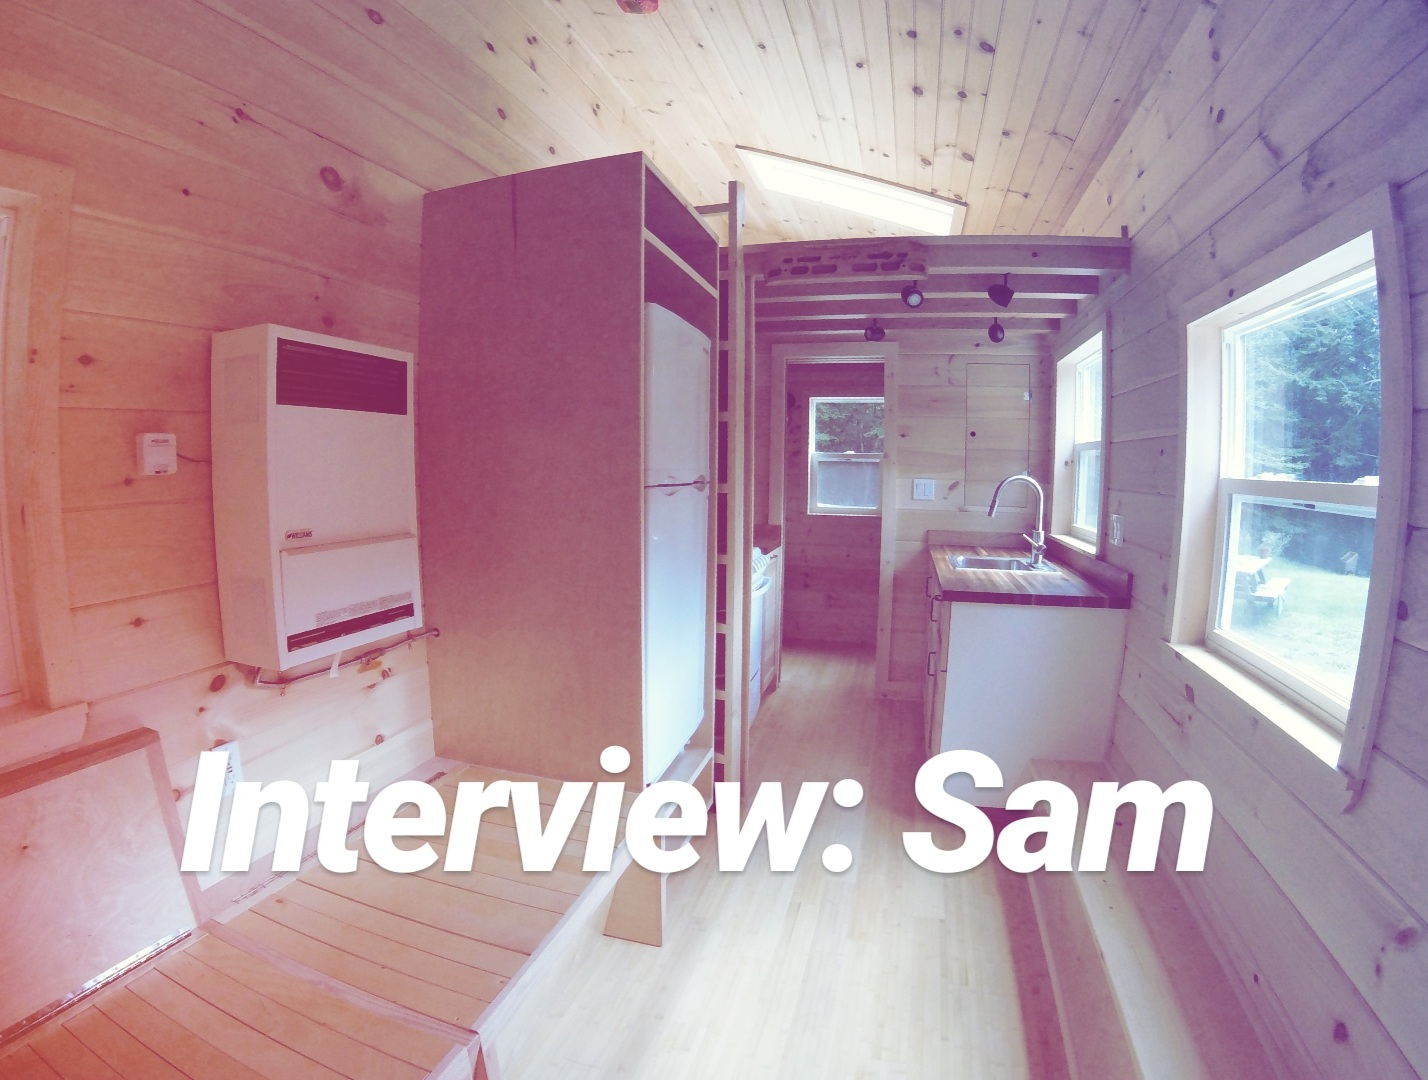 tiny-house-interview-sam.jpg